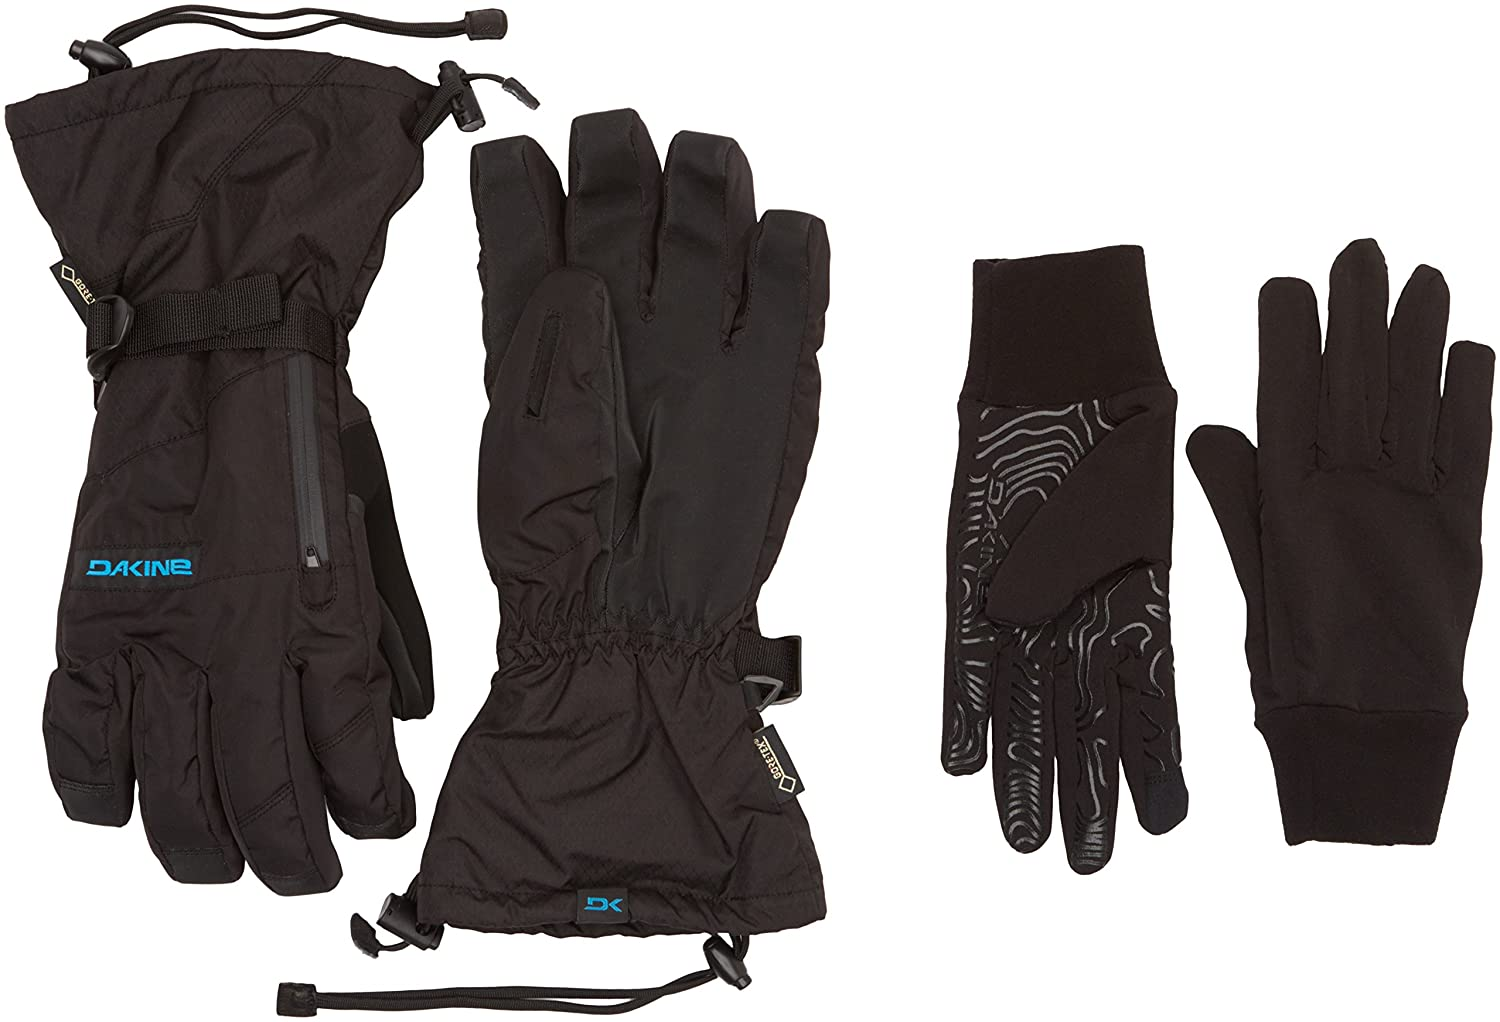 Dakine Men's Titan Gloves 01100350